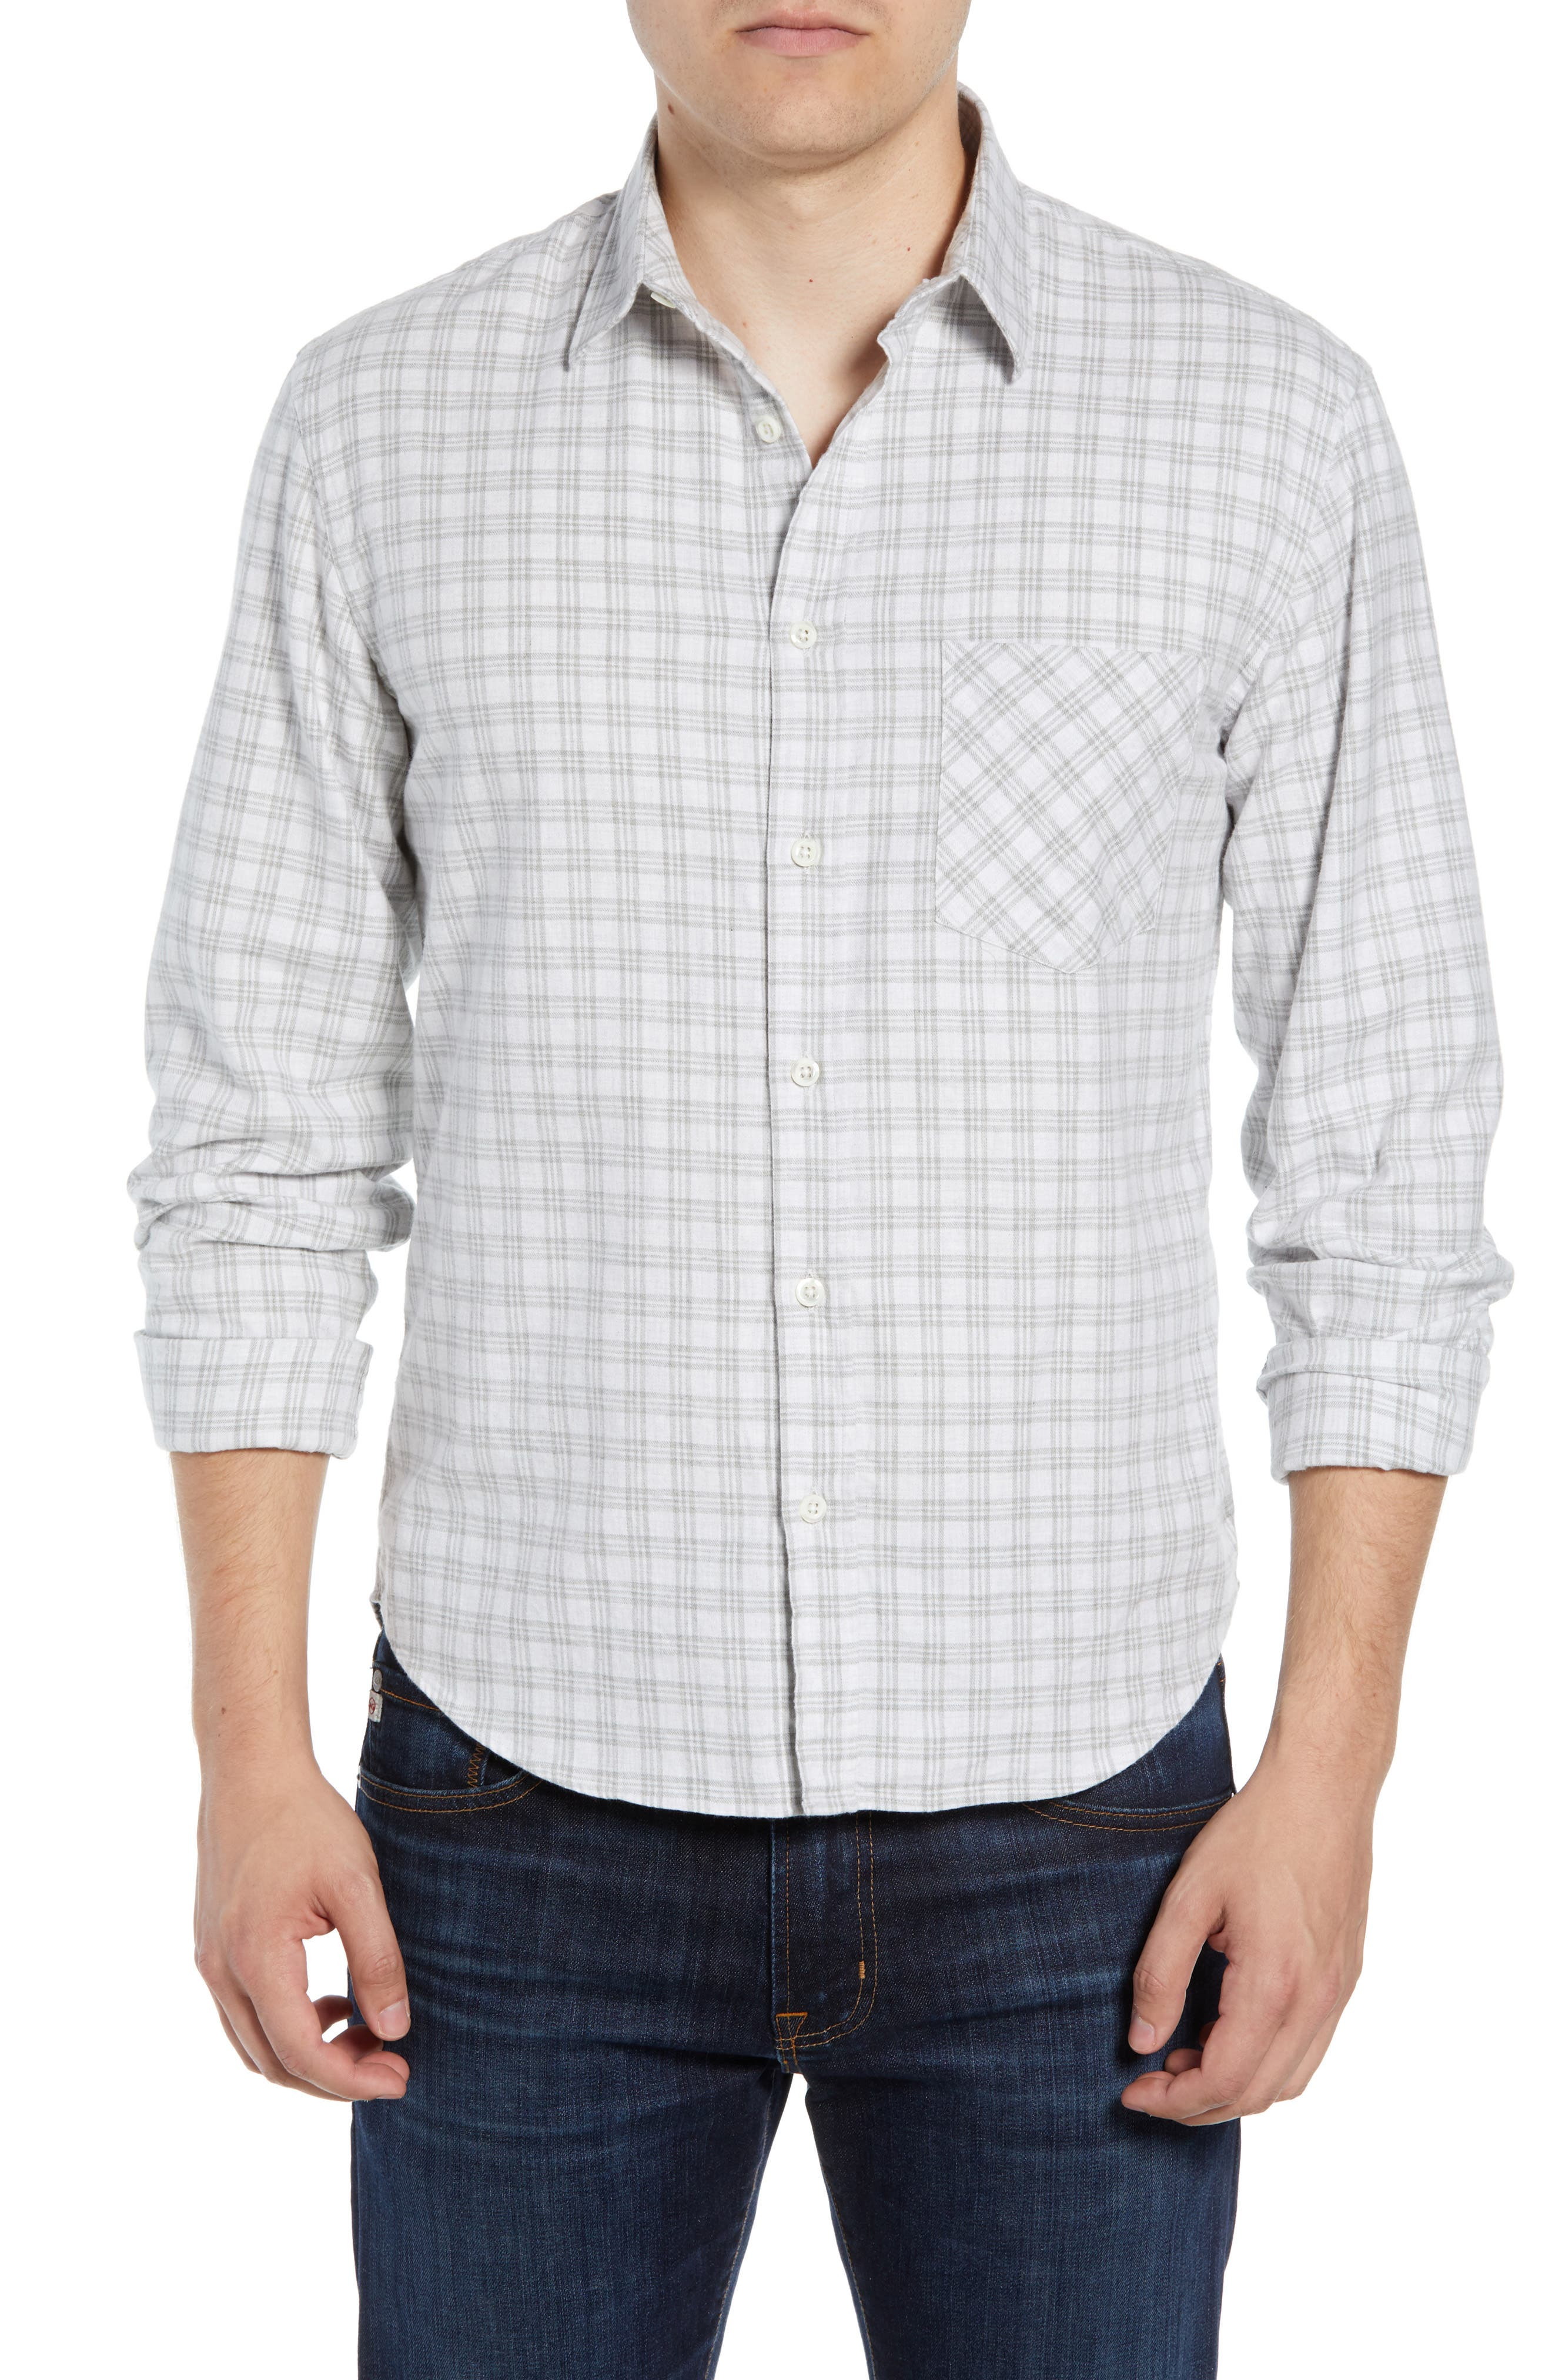 Kirby Slim Fit Check Sport Shirt,                             Main thumbnail 1, color,                             LIGHT GREY/ NATURAL